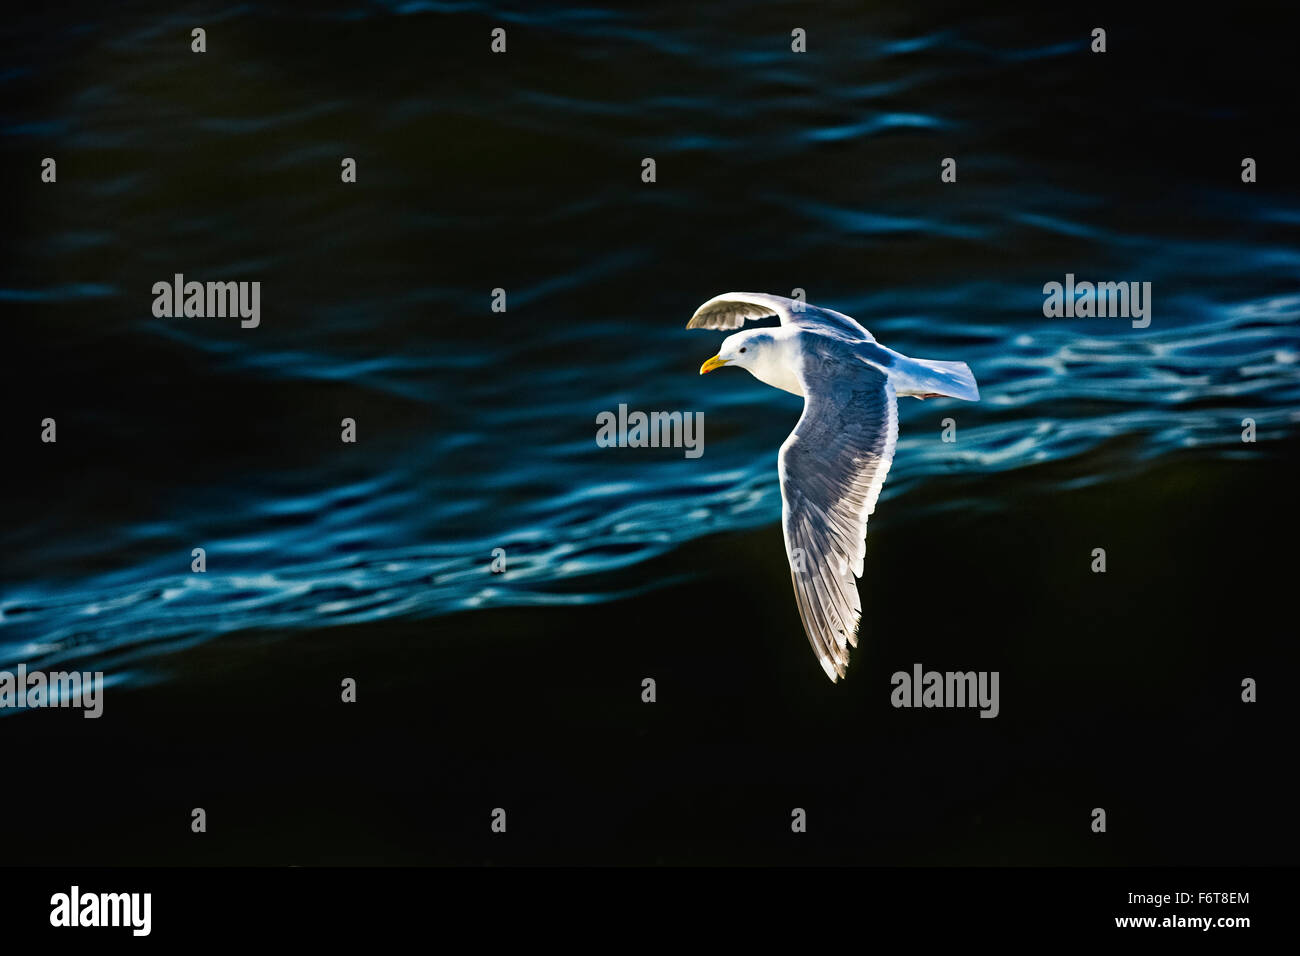 Seagull flying over rippling water - Stock Image